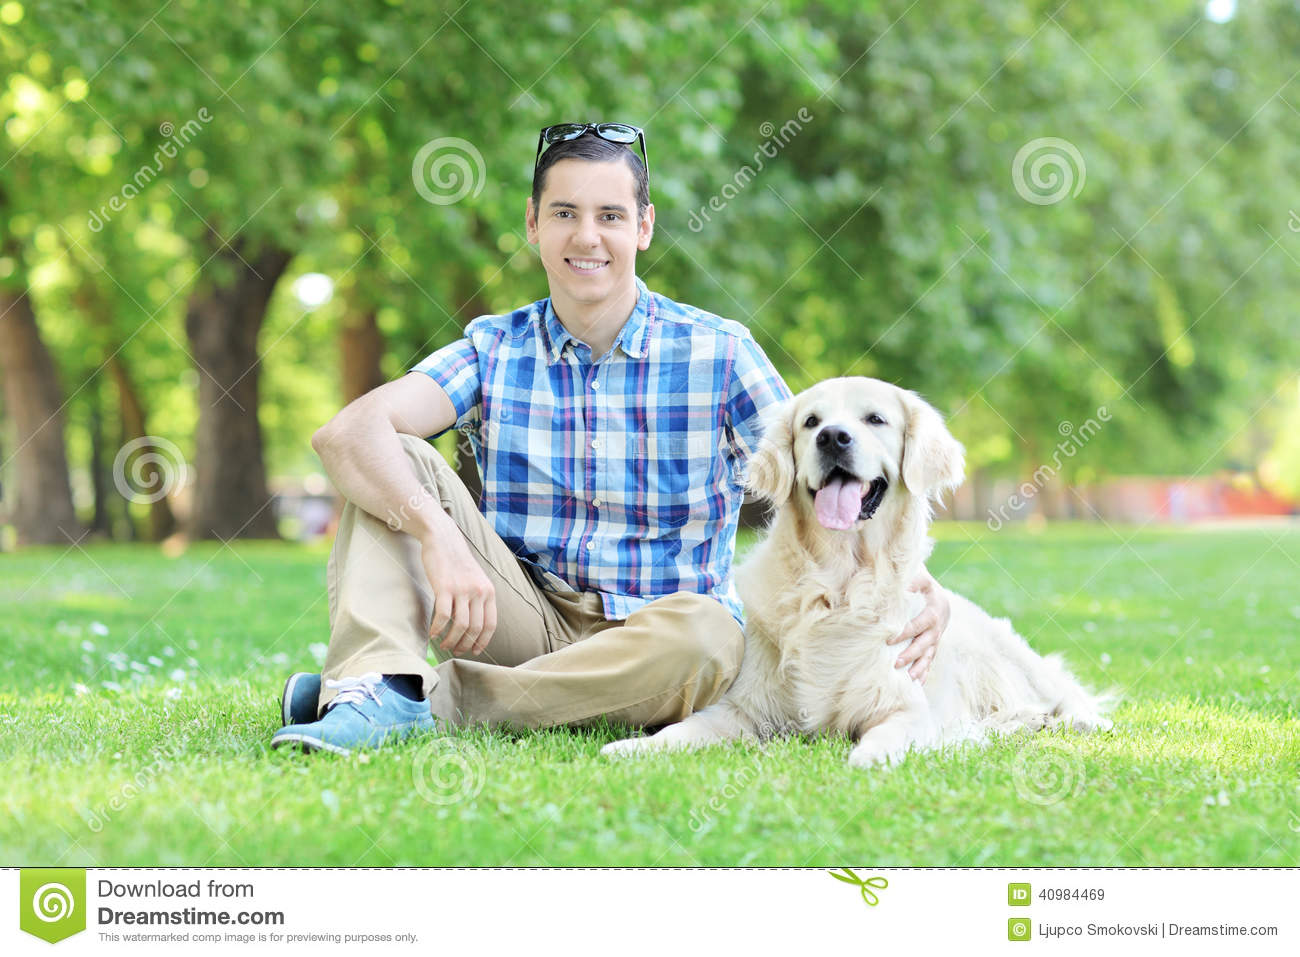 Young man relaxing in park seated with his dog